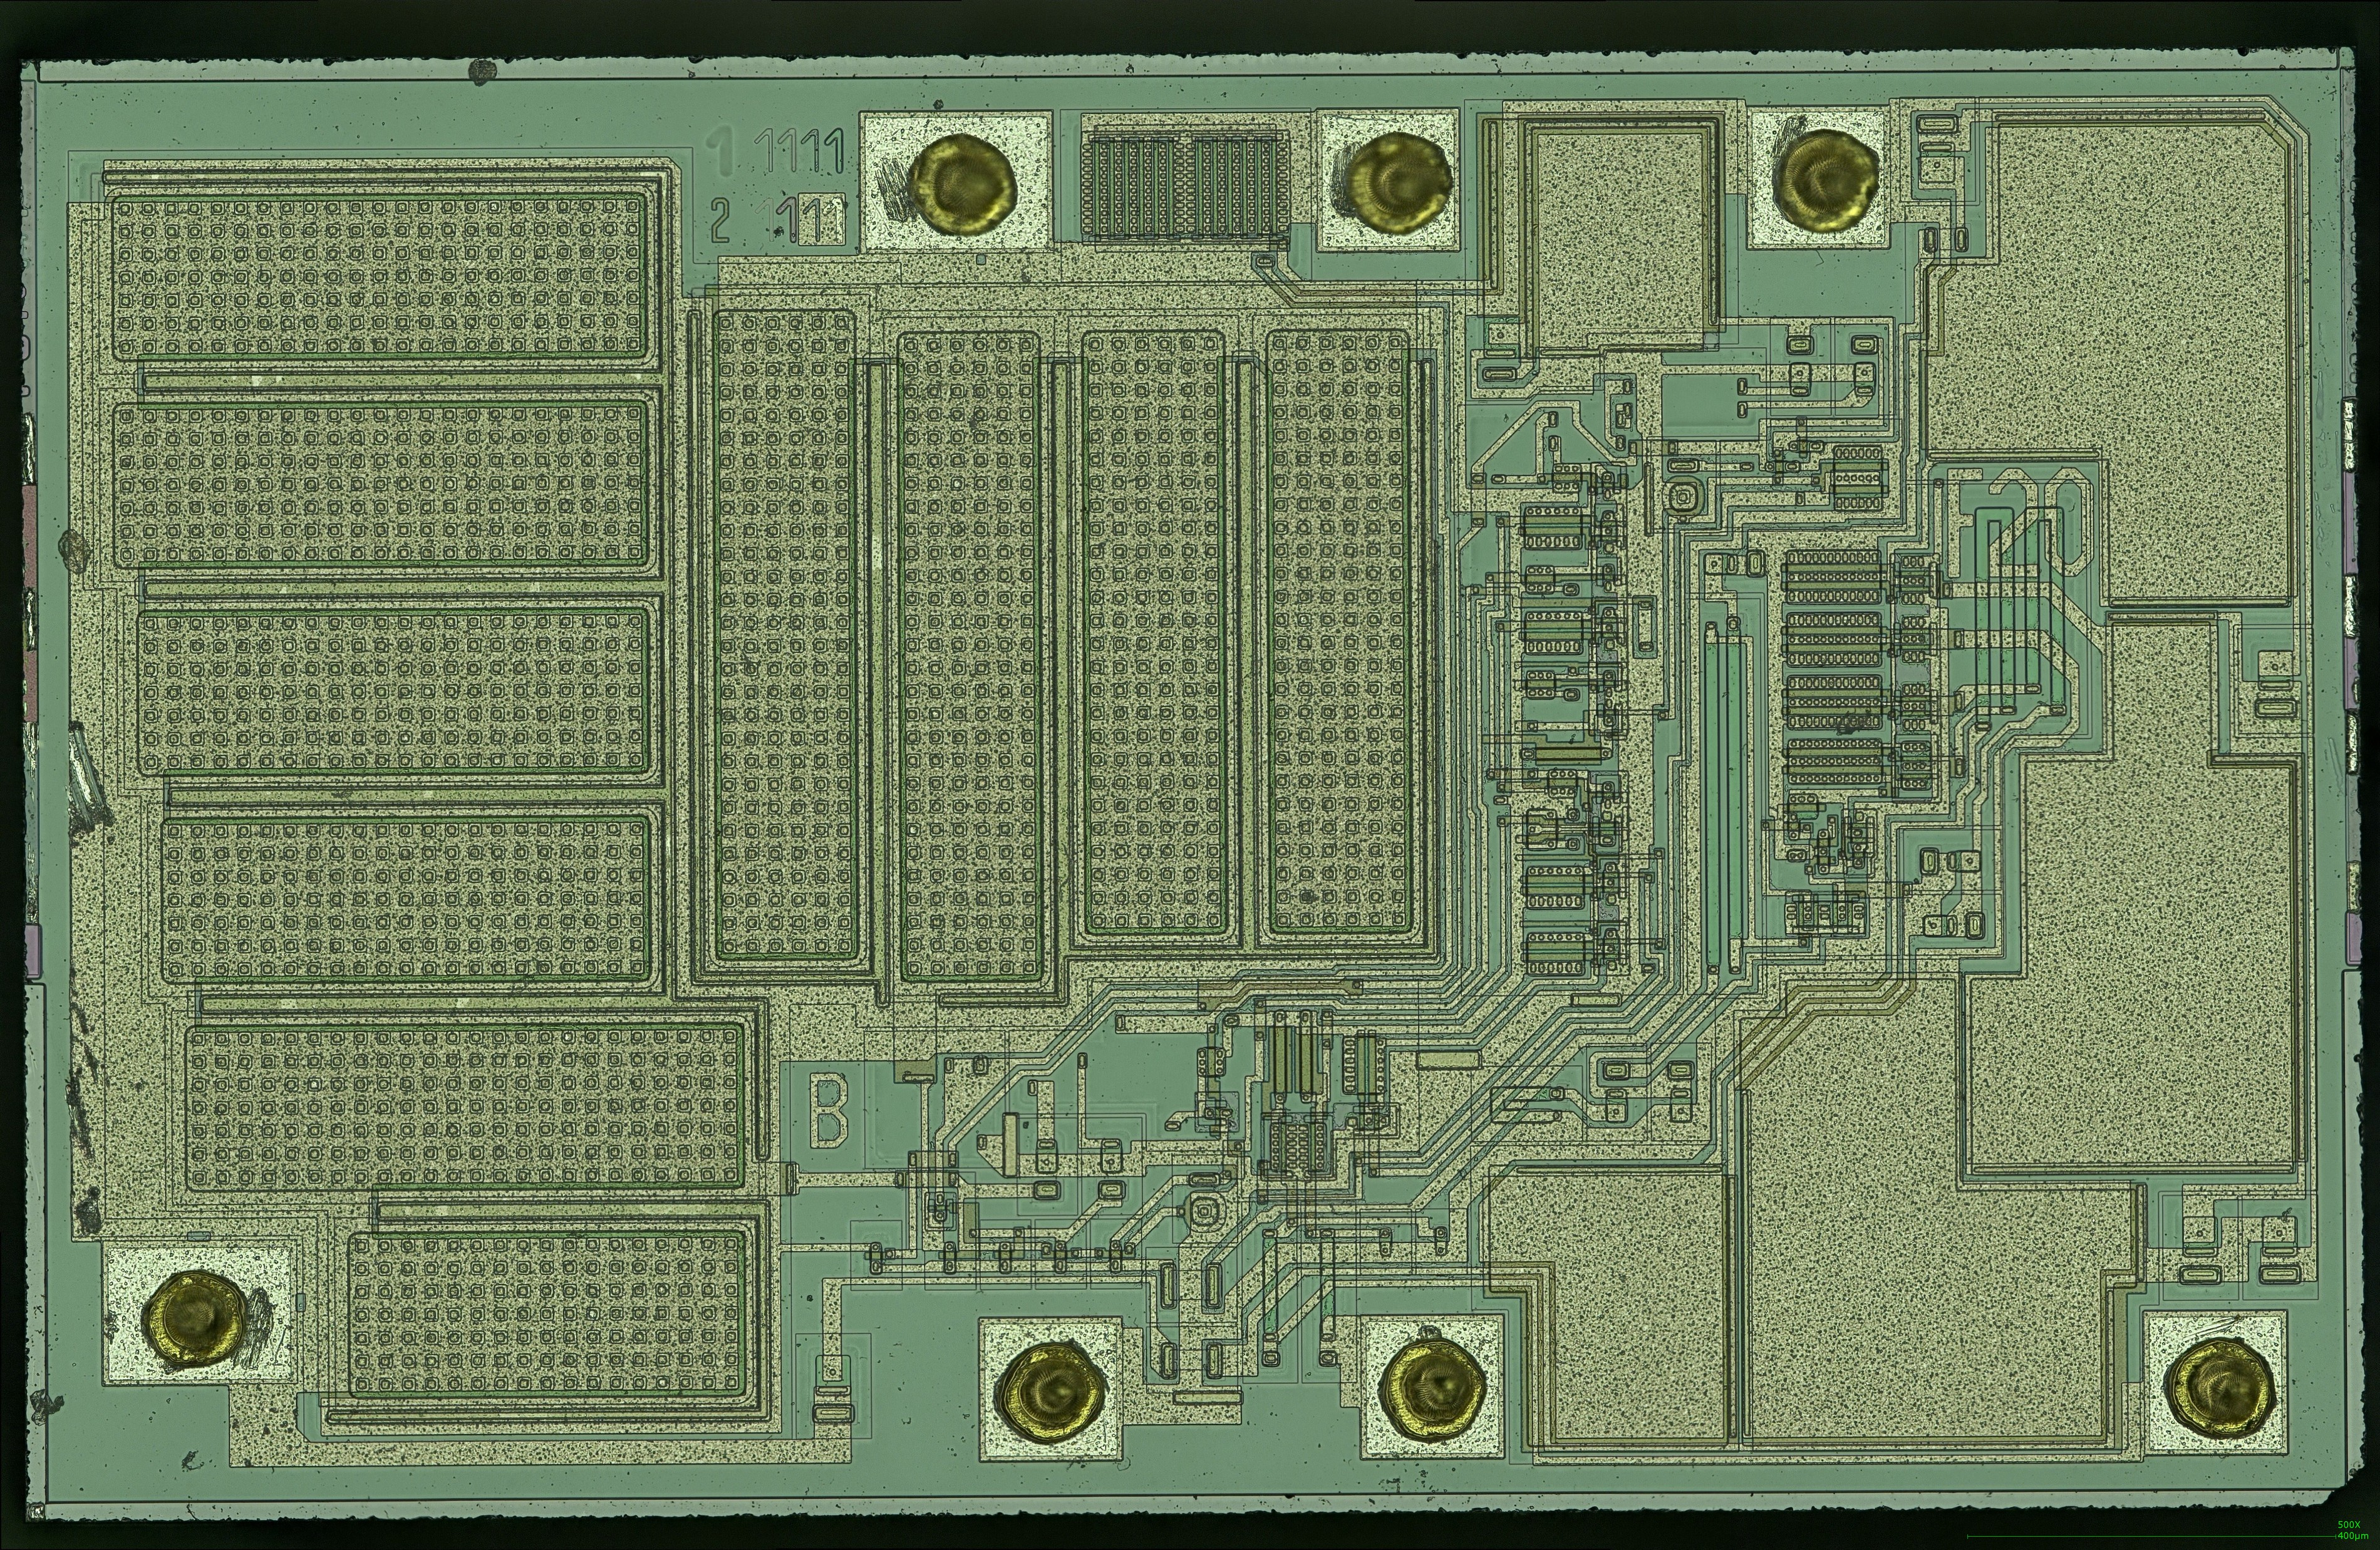 s2001_die_edgelight_500x_small.jpg